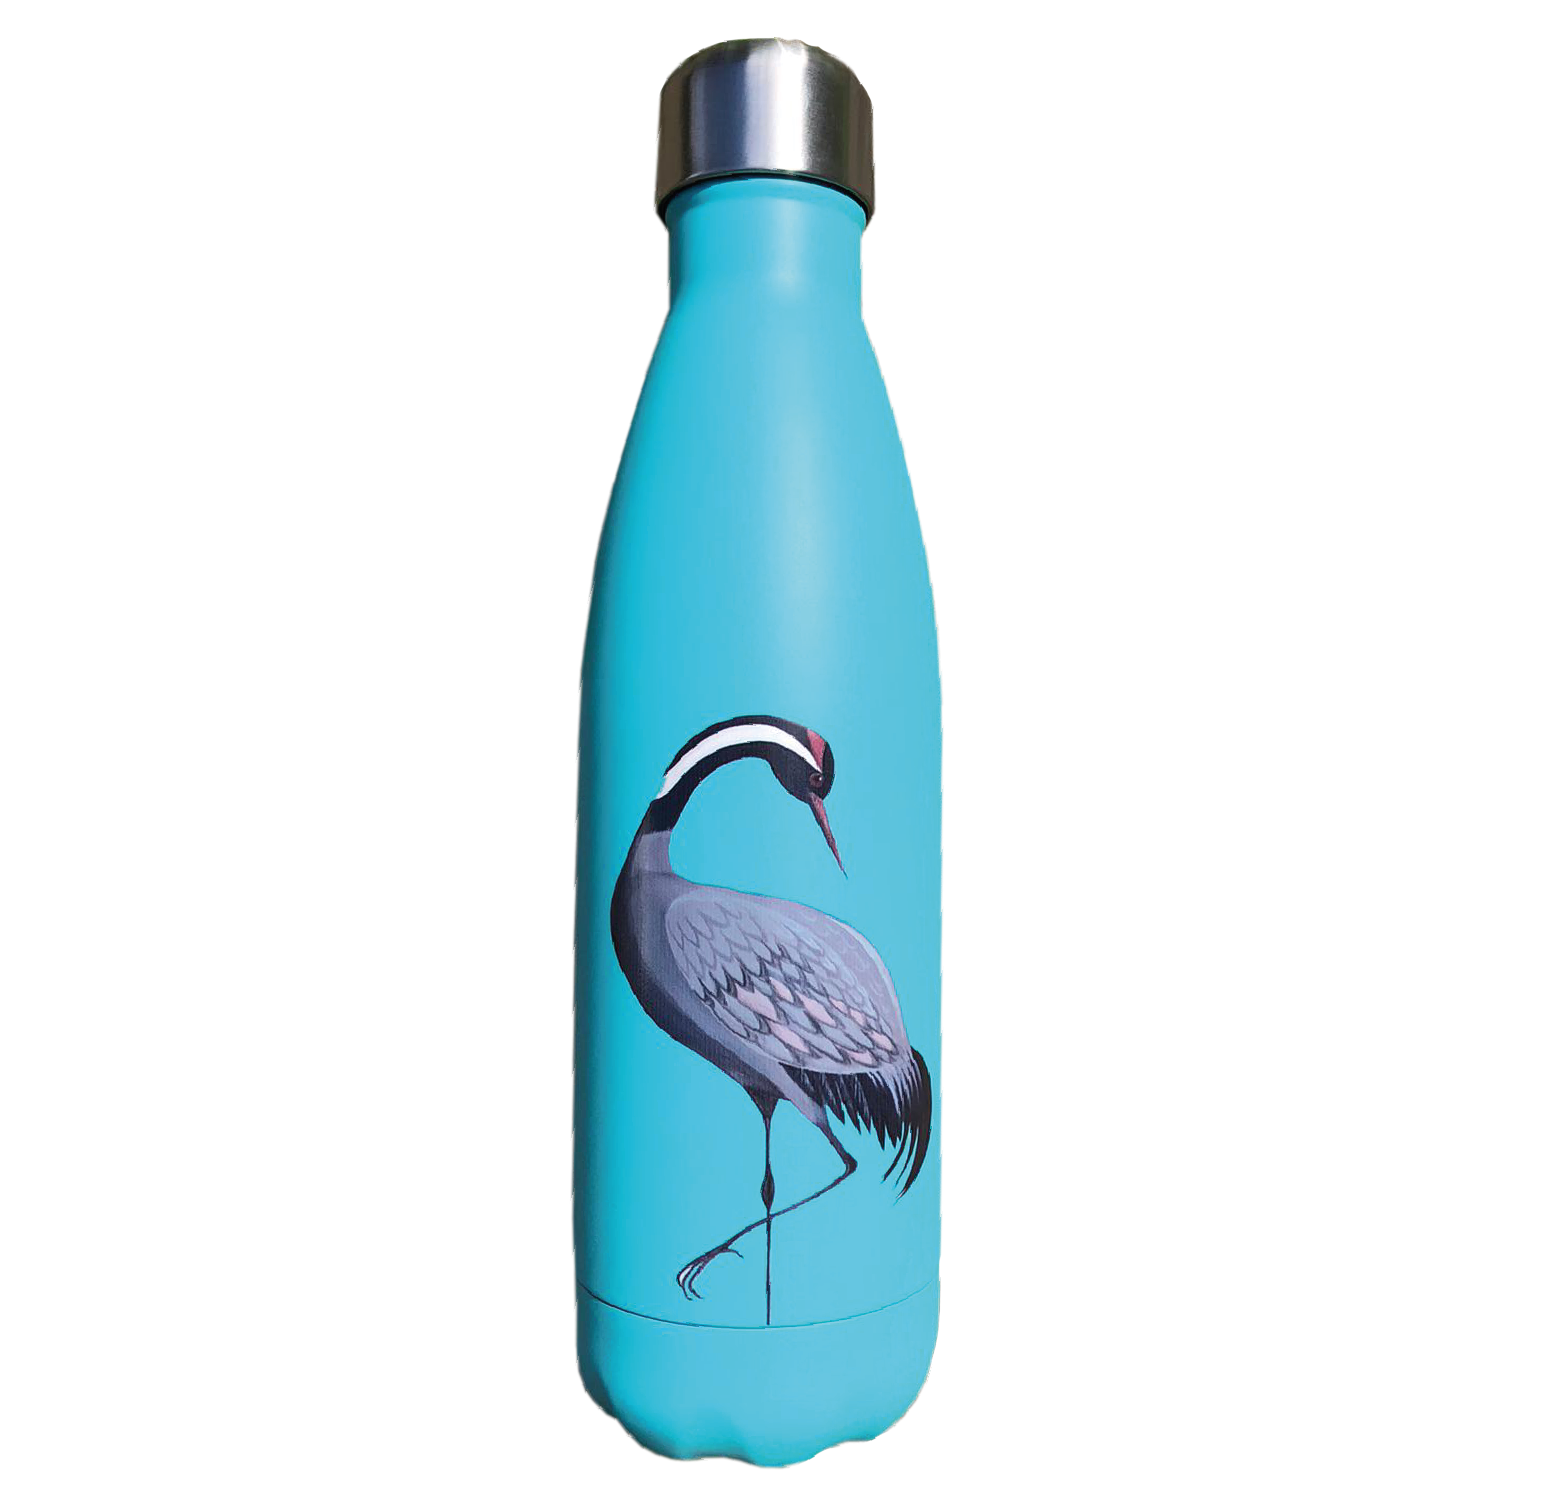 Aqua Crane Eco Bottle